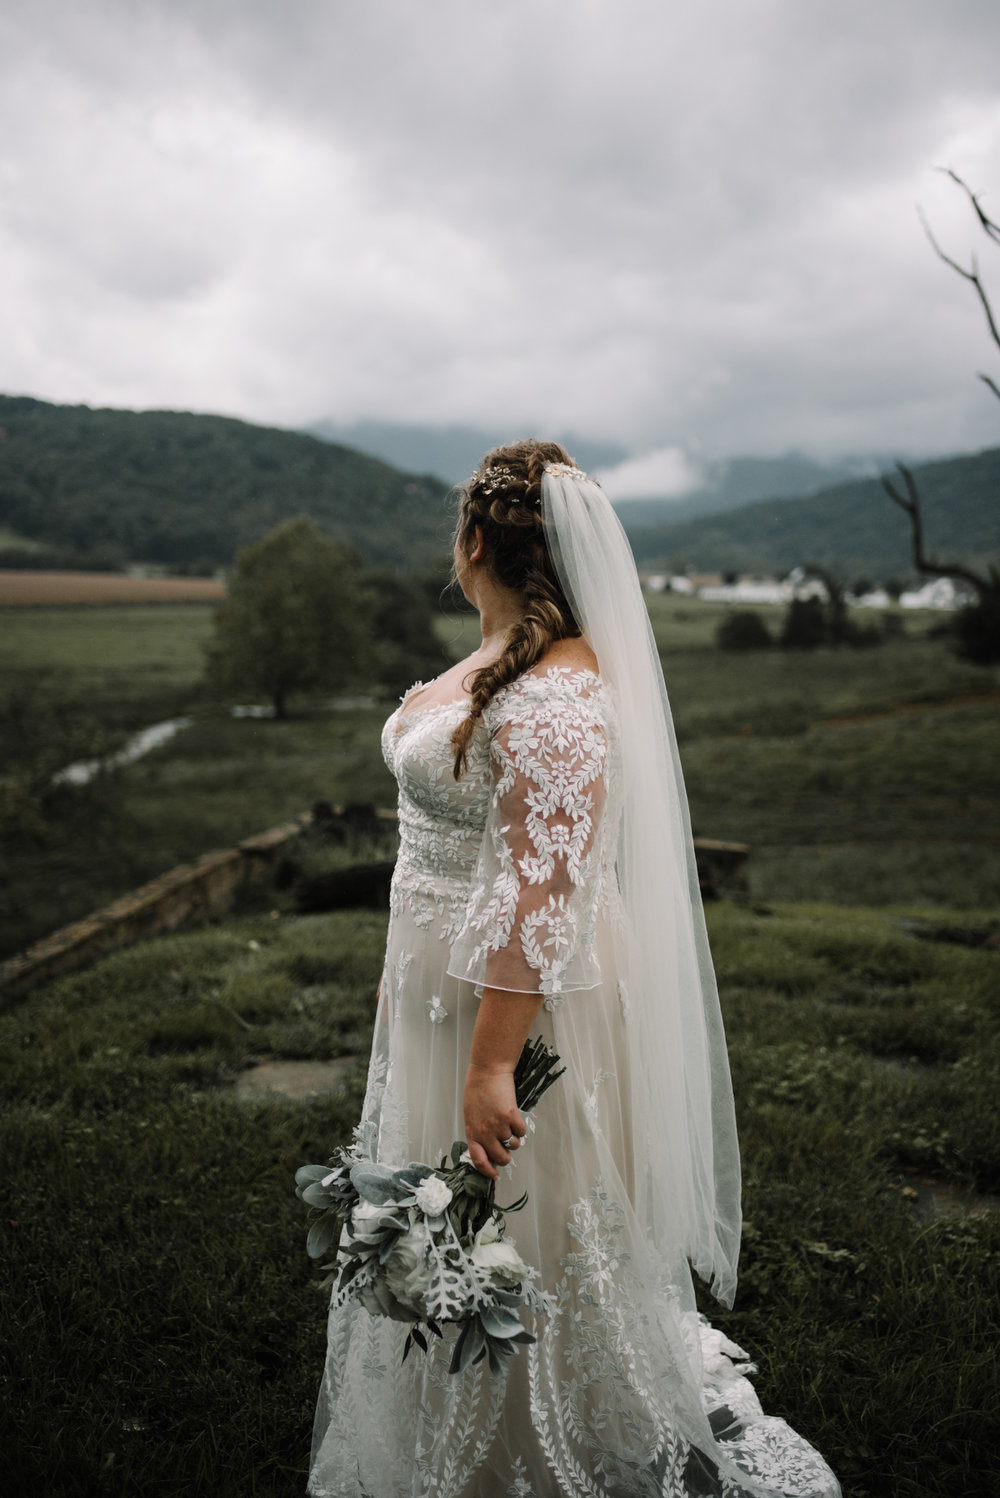 Jordan and Danielle - Shenandoah Woods Luray Virginia Wedding - Foggy Mountain and Forest Wedding - White Sails Creative Photography_87.JPG